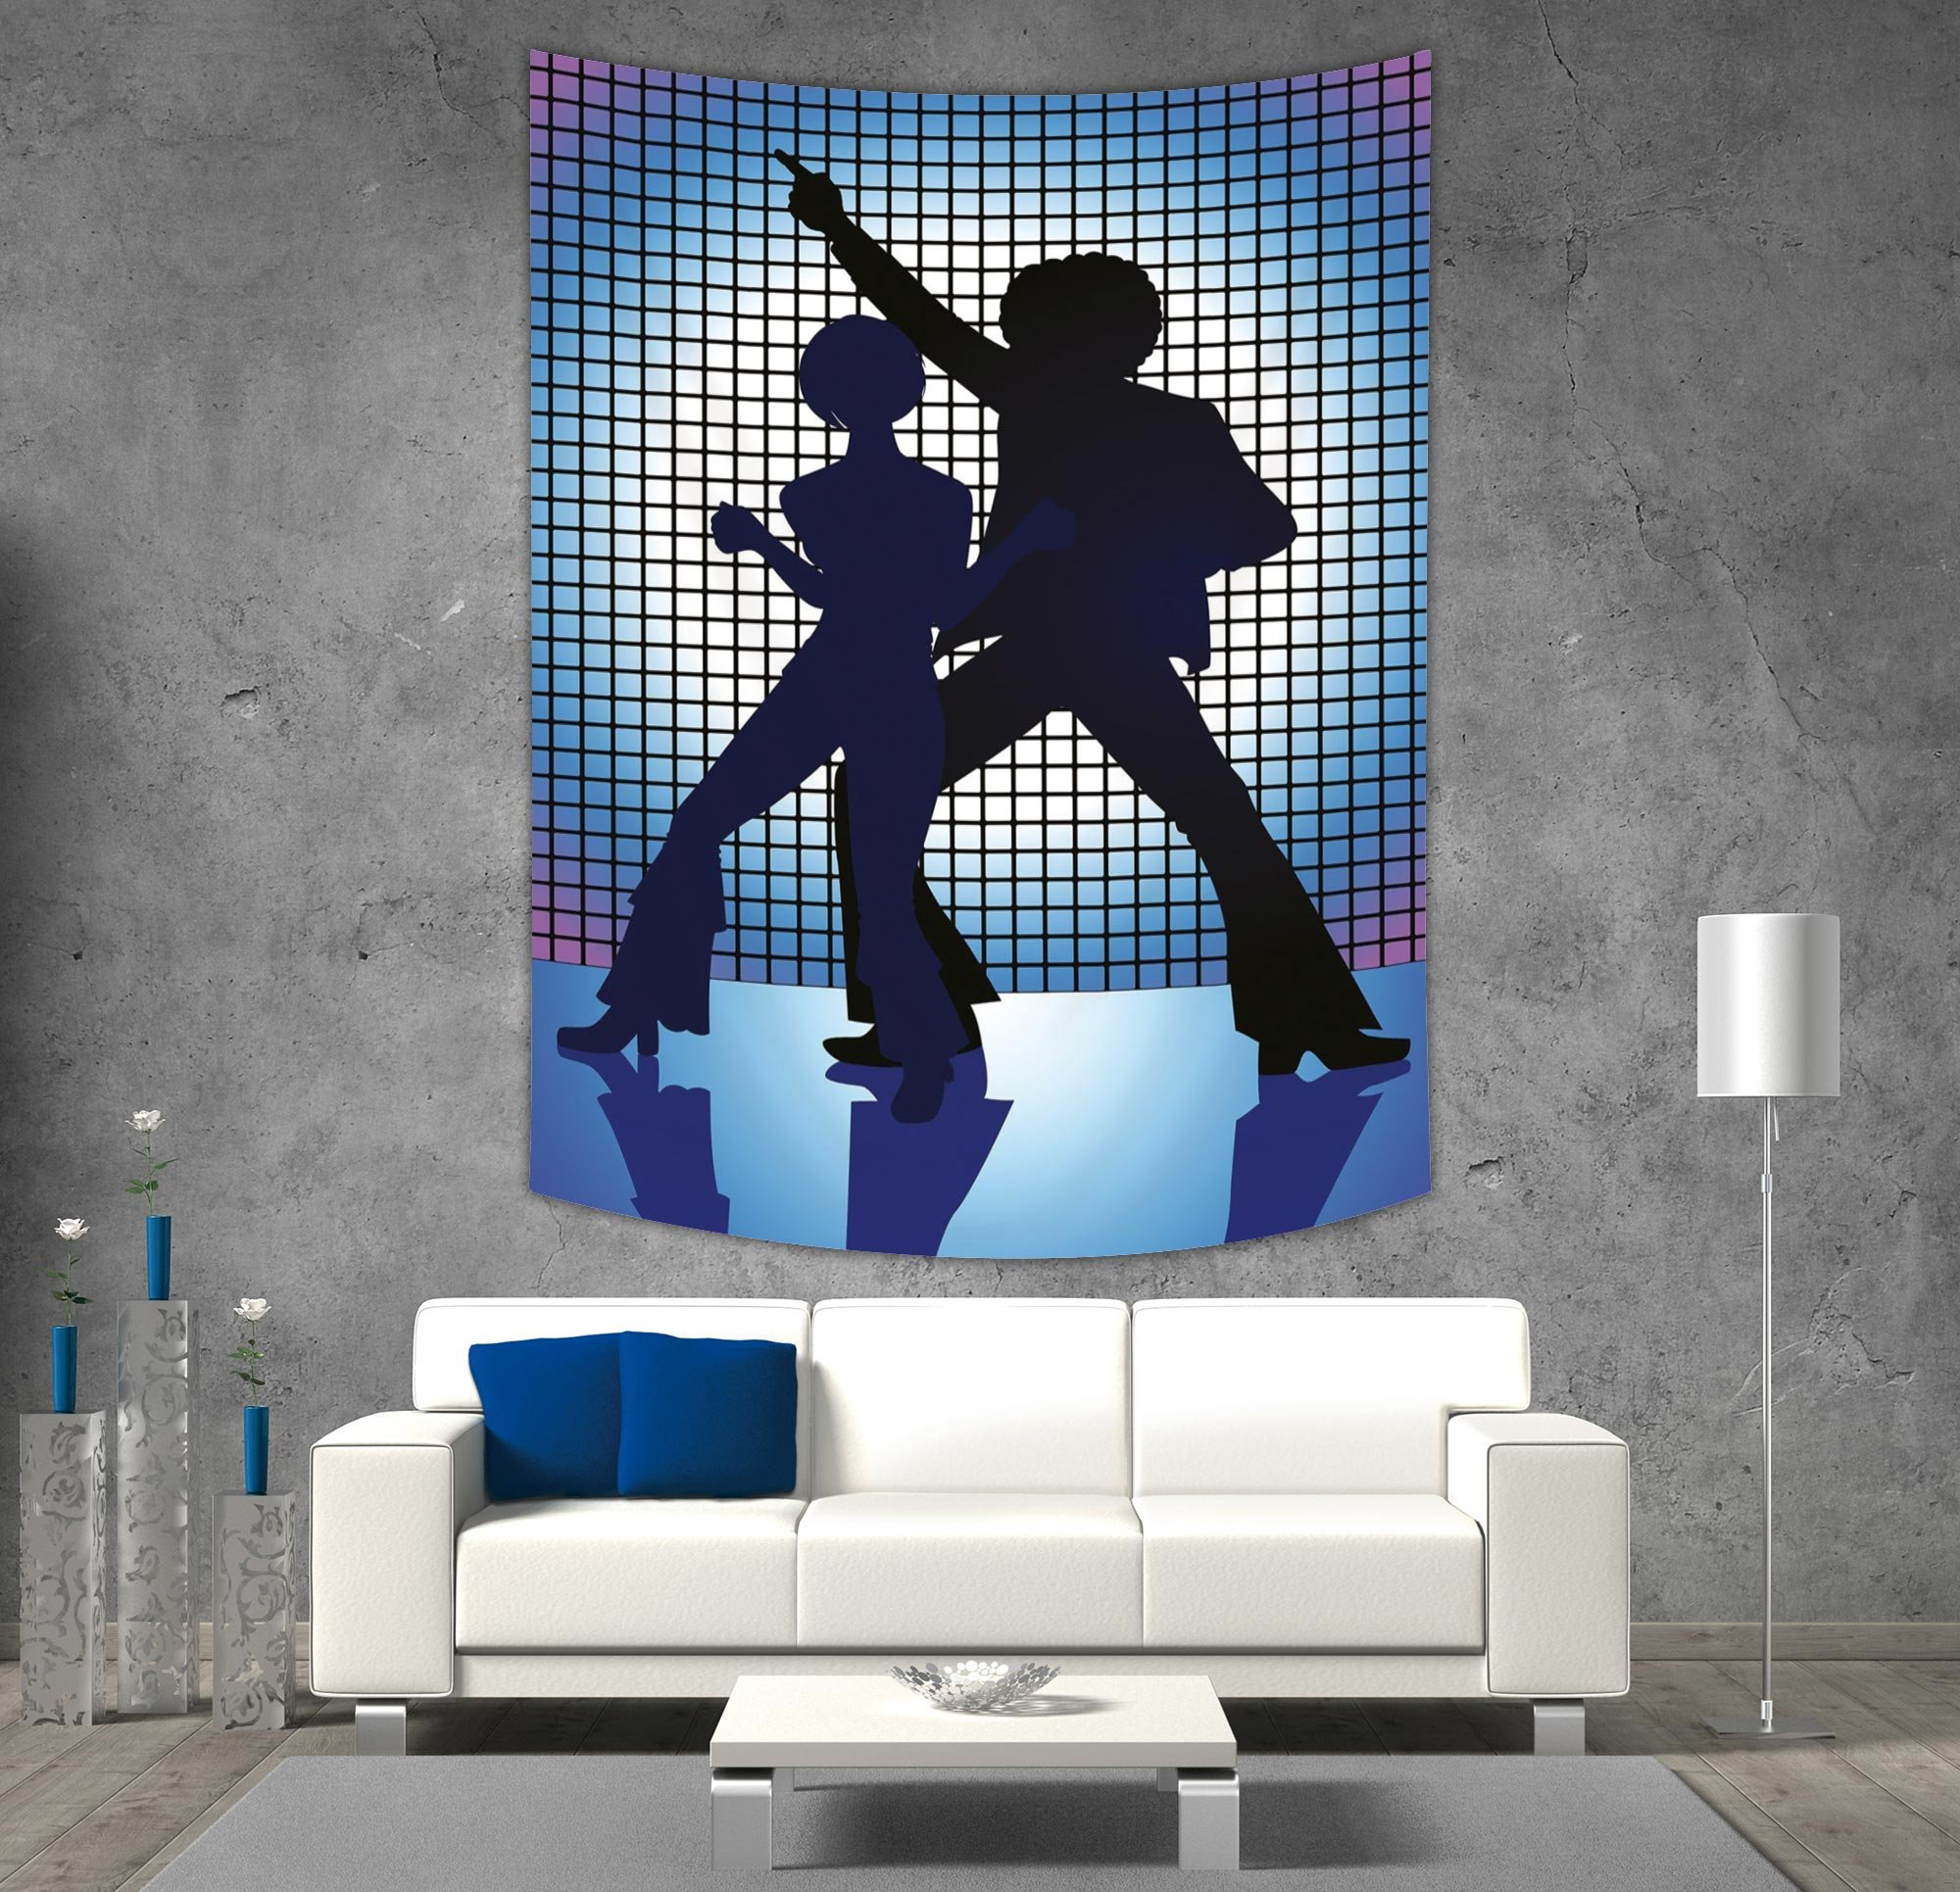 iPrint Polyester Tapestry Wall Hanging,70s Party Decorations,Couple Silhouettes on the Dance Floor Night Life Oldies Fun,Blue Purple Black,Wall Decor for Bedroom Living Room Dorm